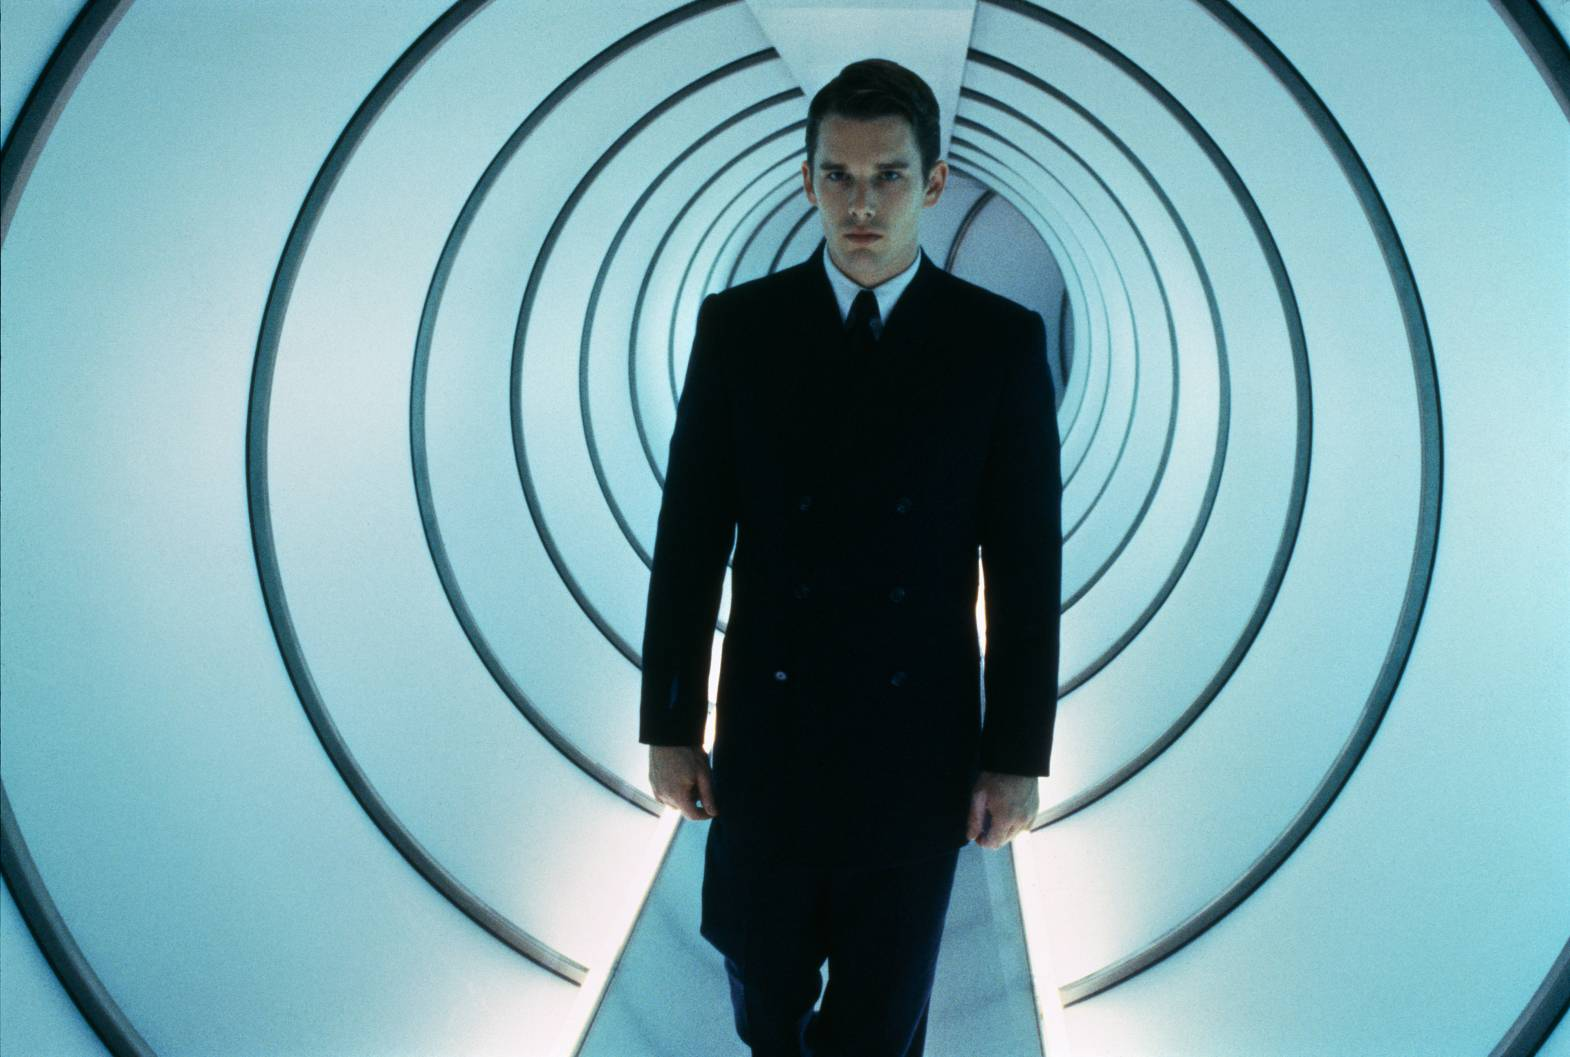 gattaca analysis of the movie for